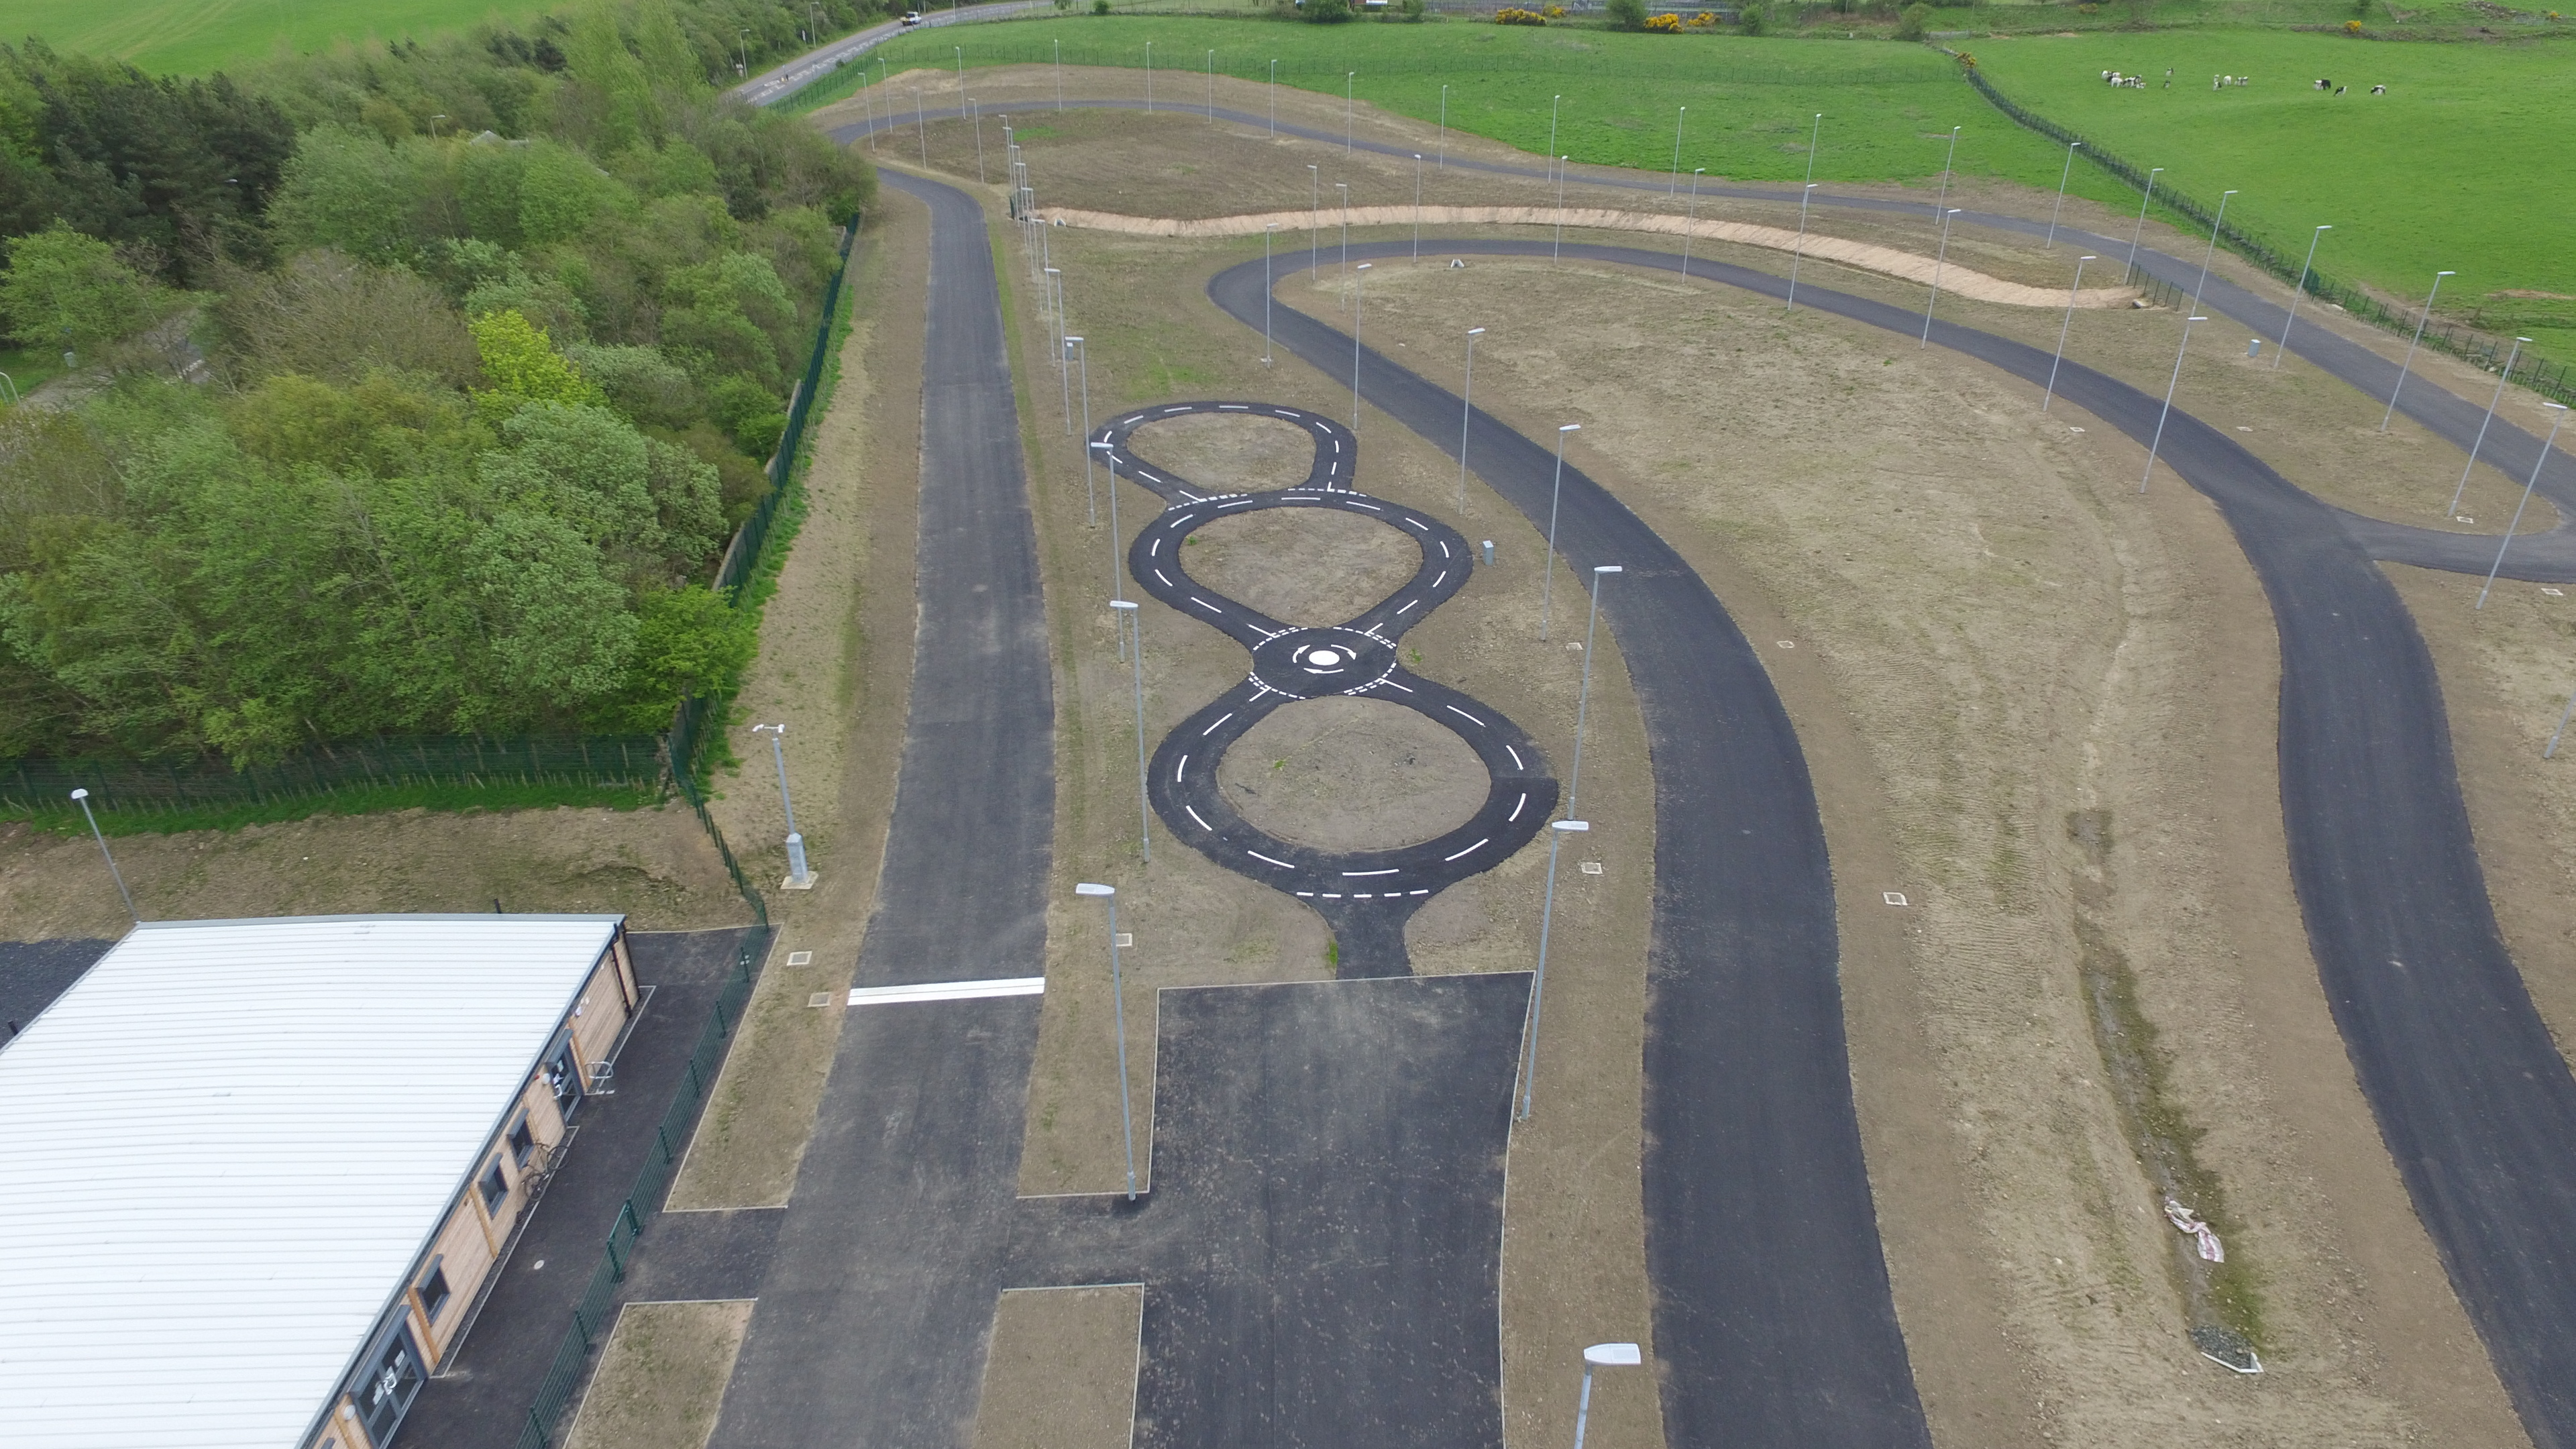 The circuit offer a range of different tracks for cyclists of all abilities.